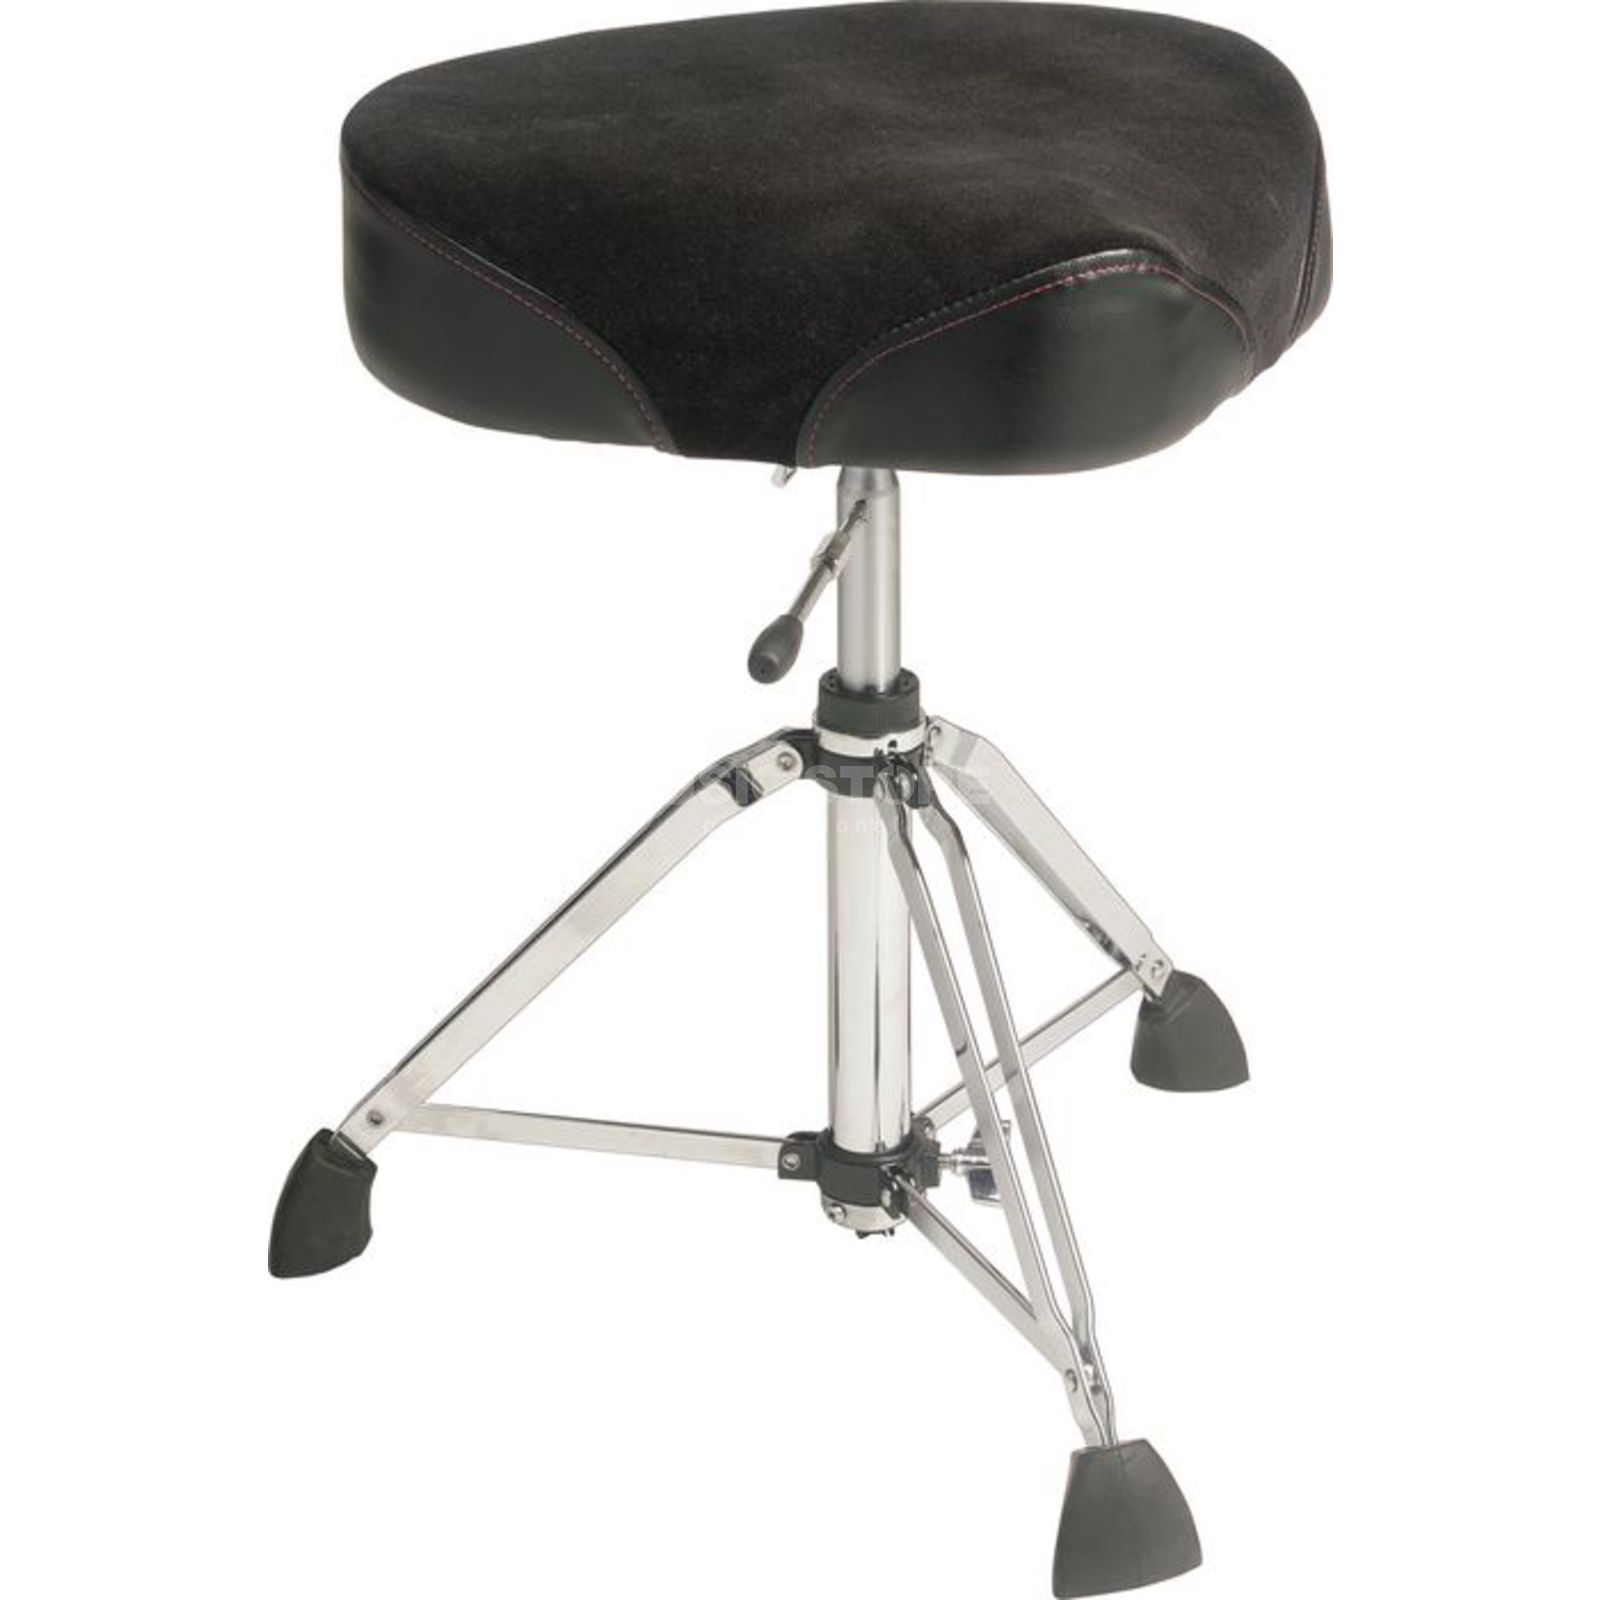 Gibraltar Drum Throne 9608HM Produktbillede